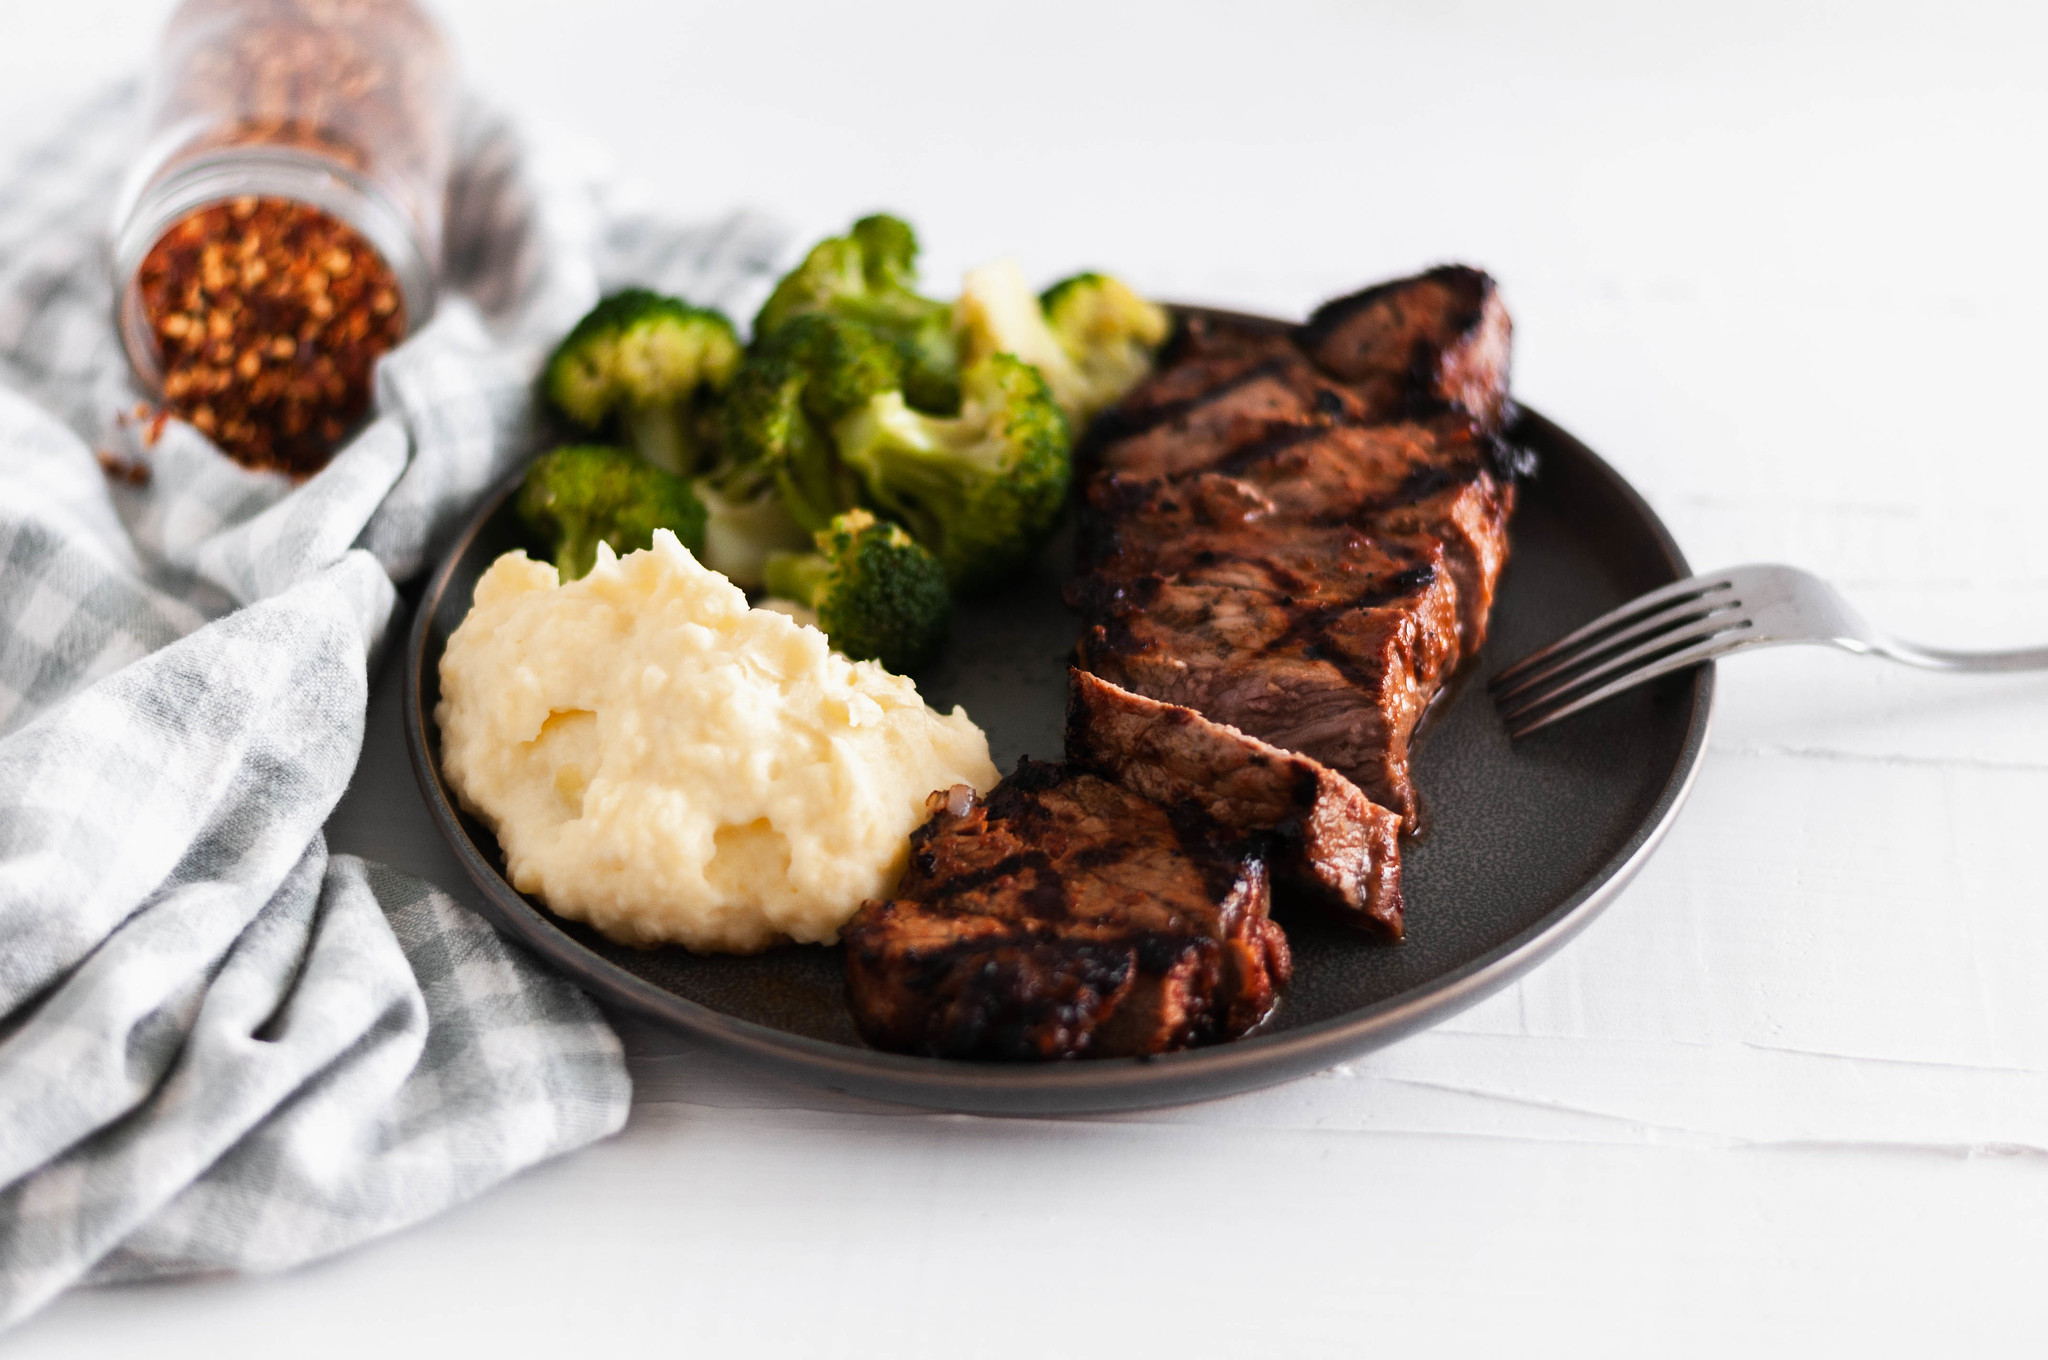 This simple Spicy Steak Marinade is packed with flavor and spice. Marinate some big steak and make dad's day this Father's Day.